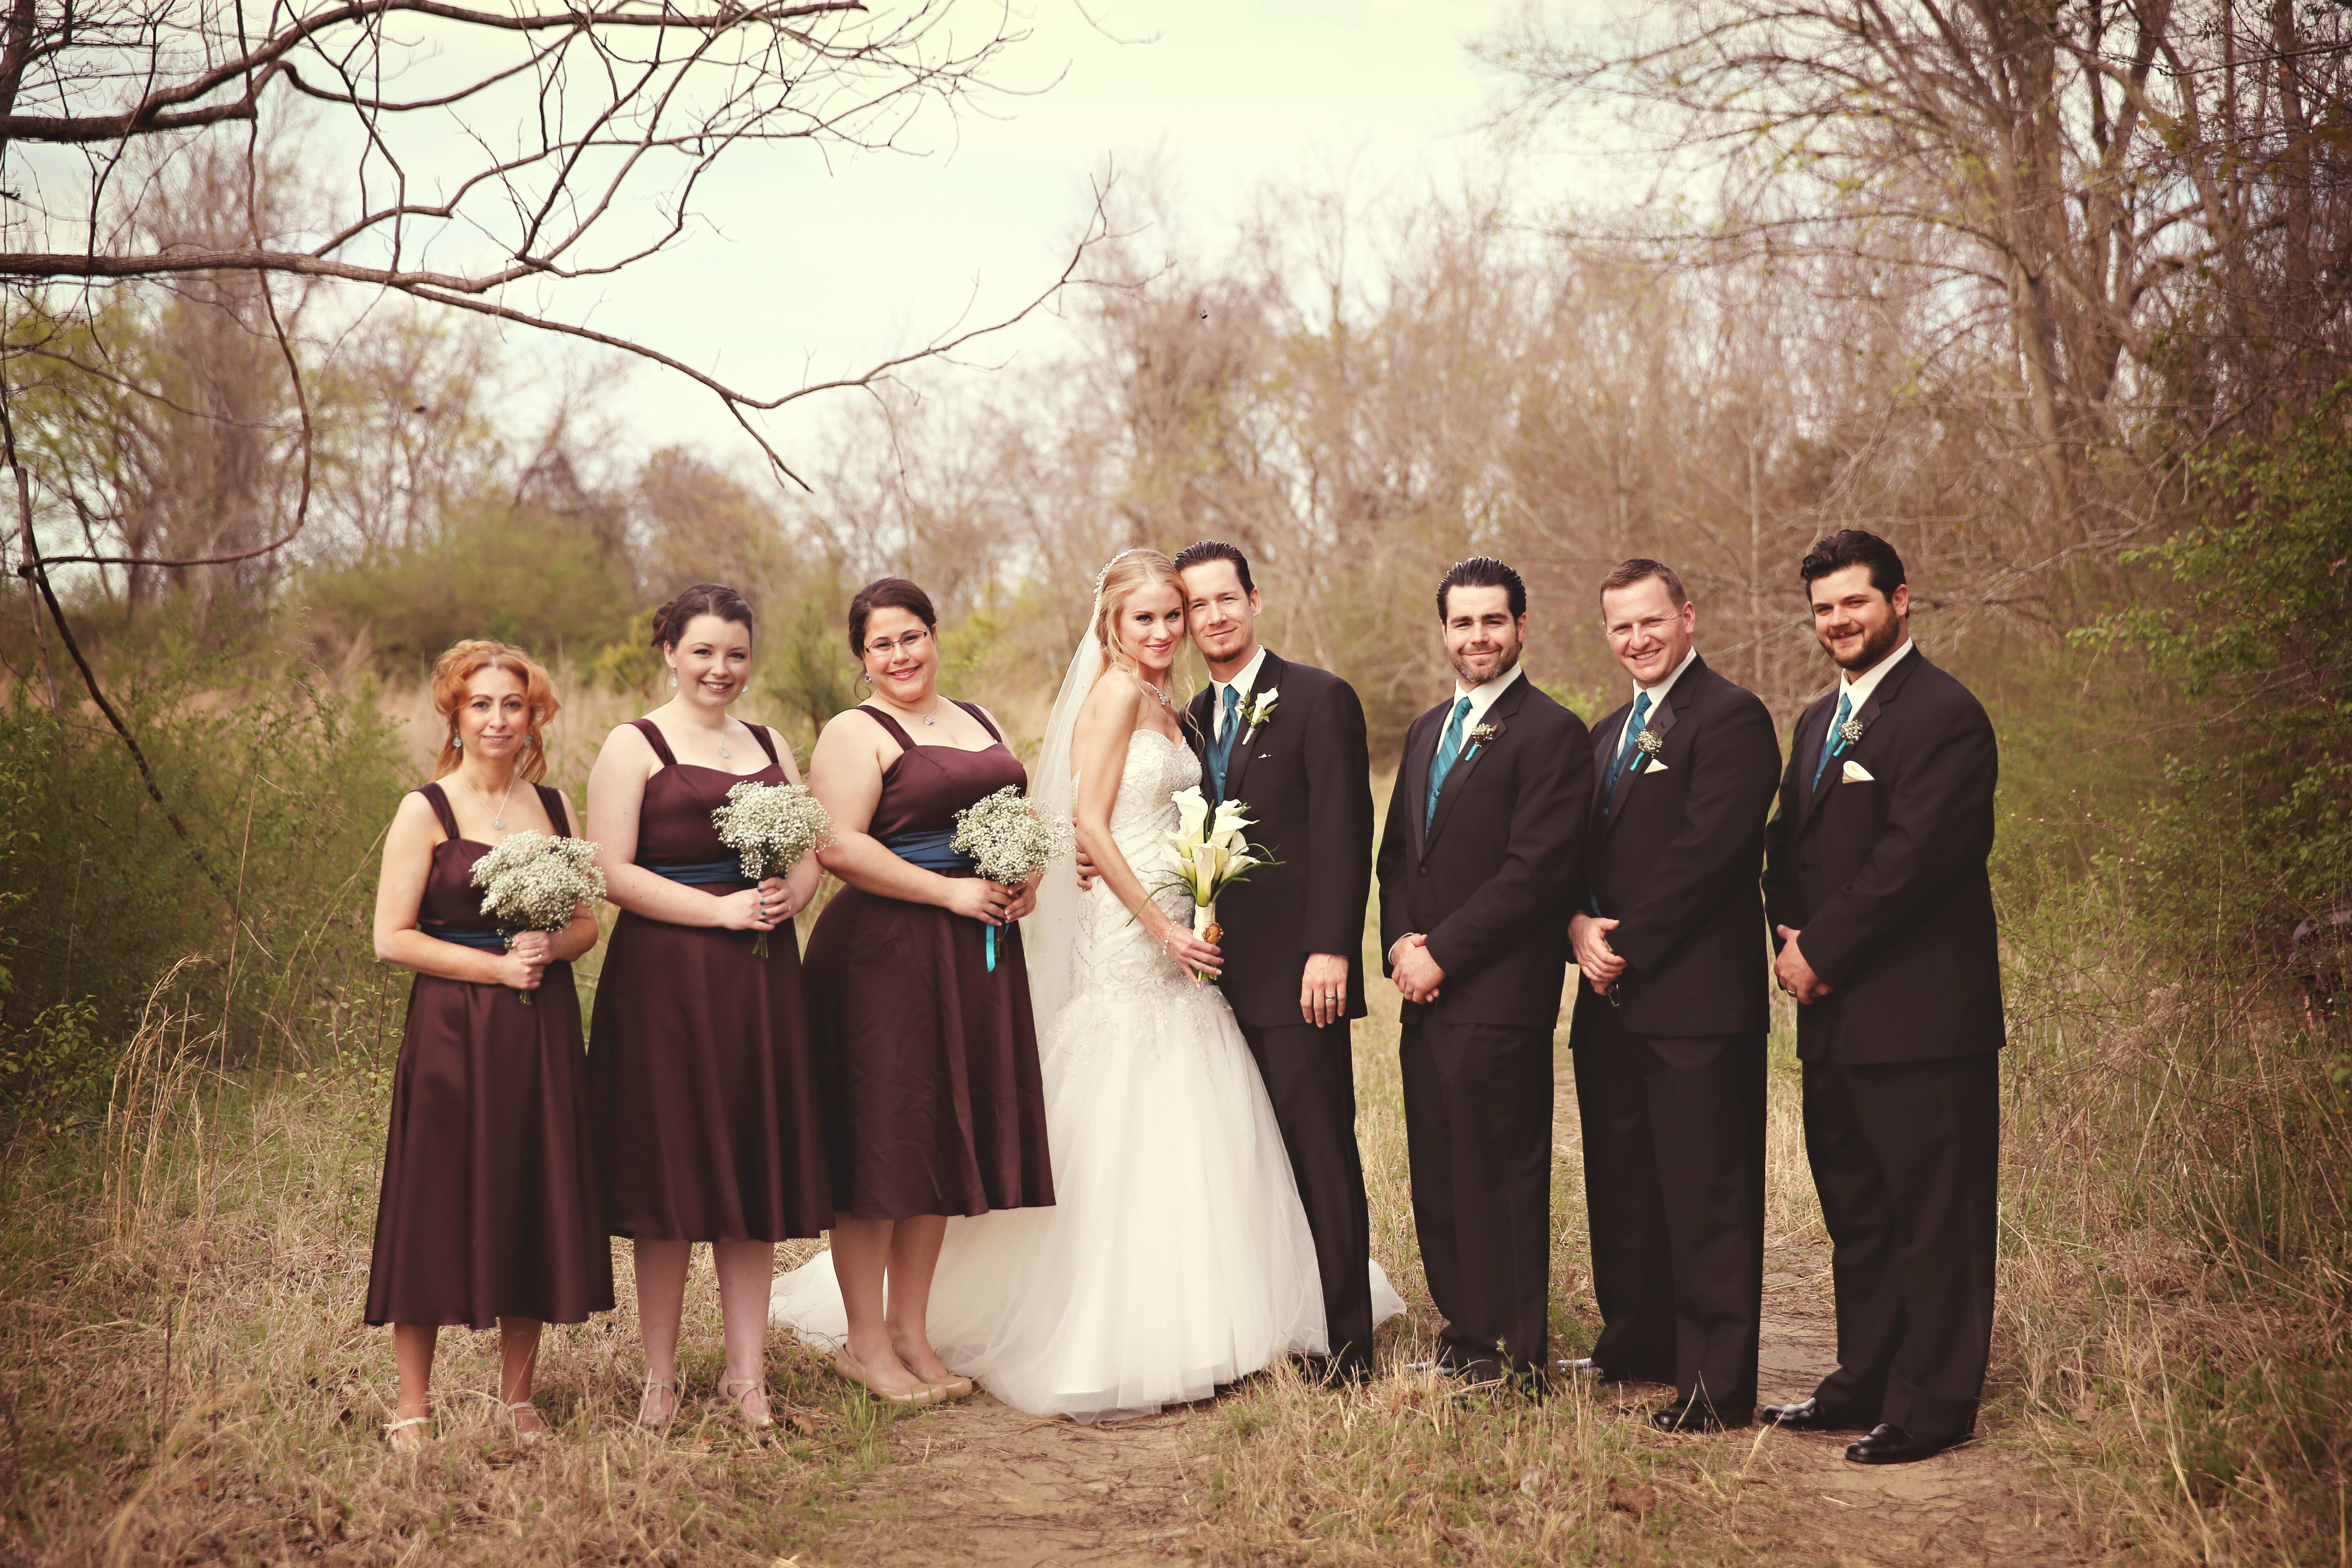 Chocolate And Teal Wedding Reception: Deep Teal And Brown Wedding Party Attire